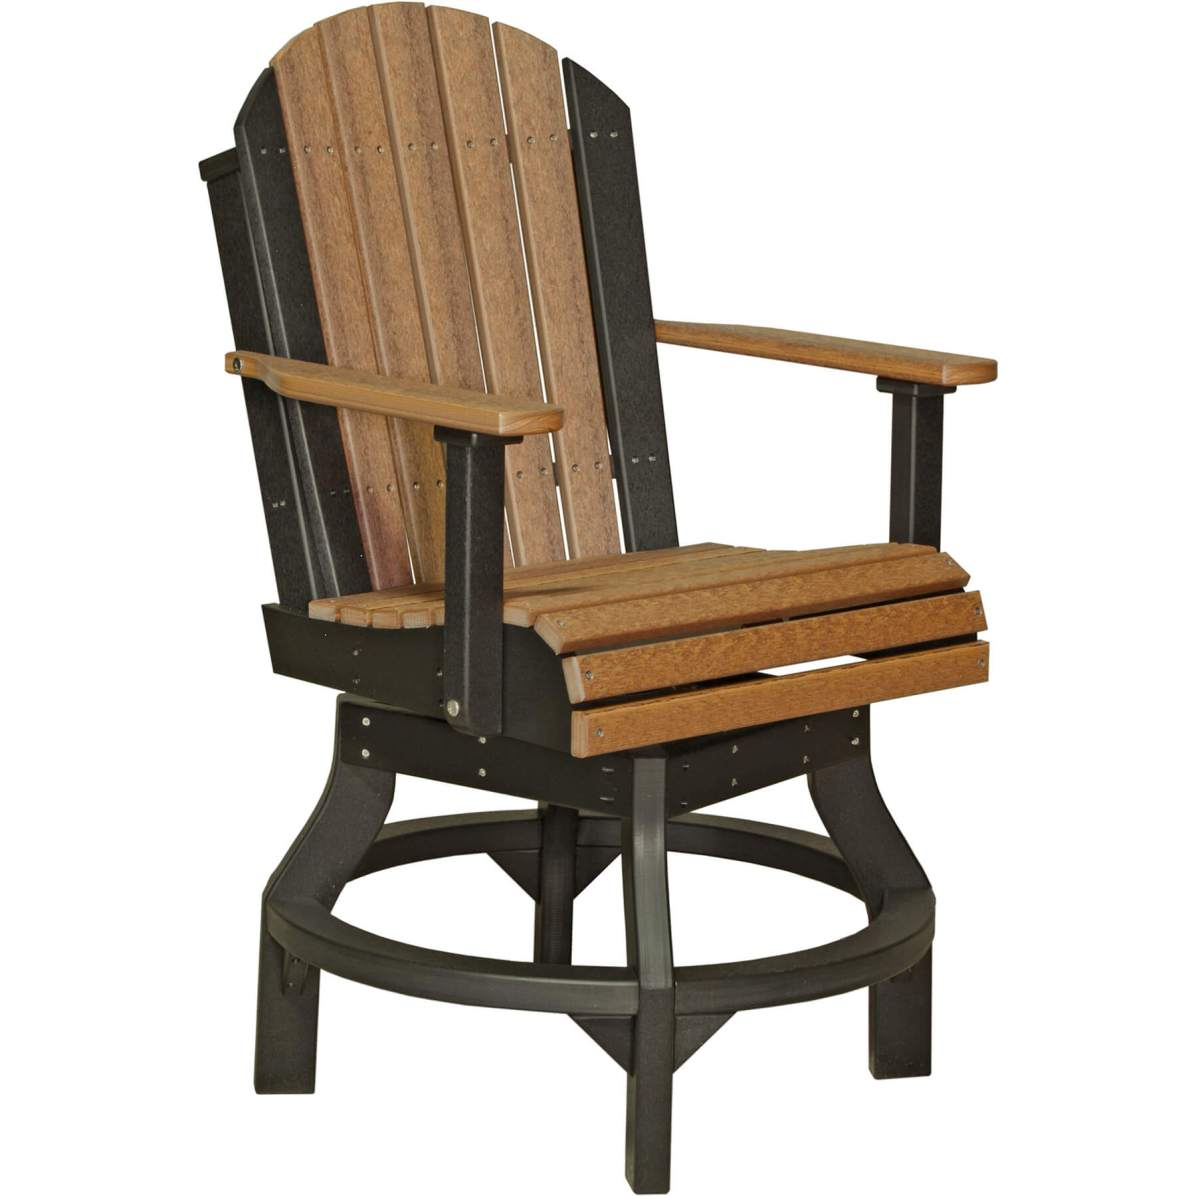 PASCCAMB Poly Adirondack Swivel Chair Counter Height (Antique Mahogany & Black)